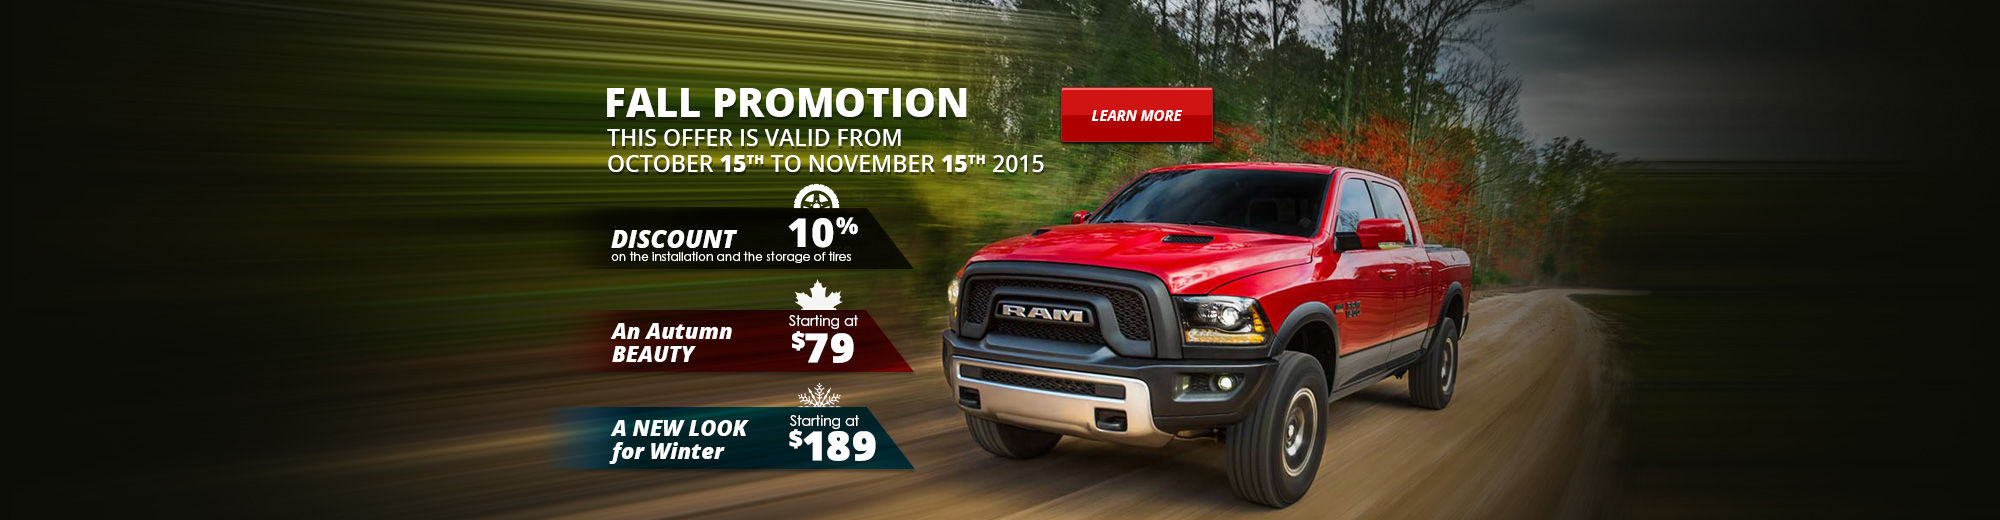 Fall promotions 2015